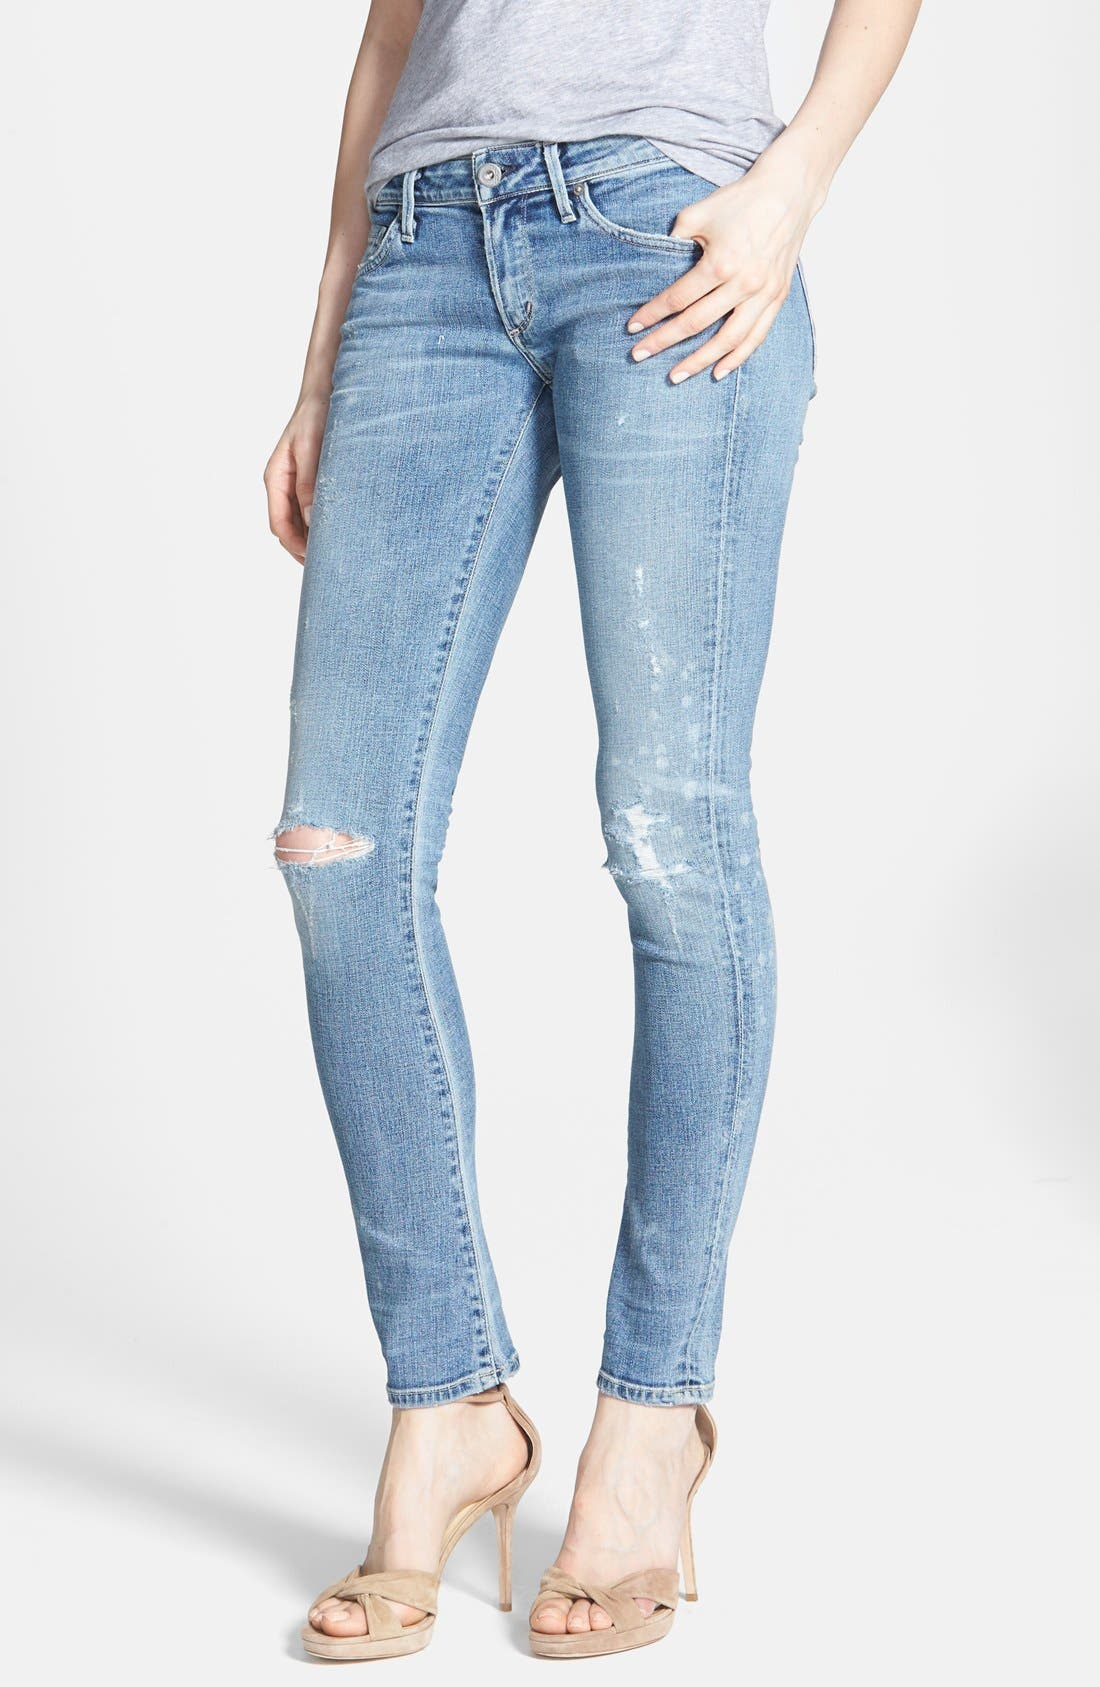 Alternate Image 1 Selected - Citizens of Humanity 'Premium Vintage - Racer' Distressed Skinny Jeans (Crosby)